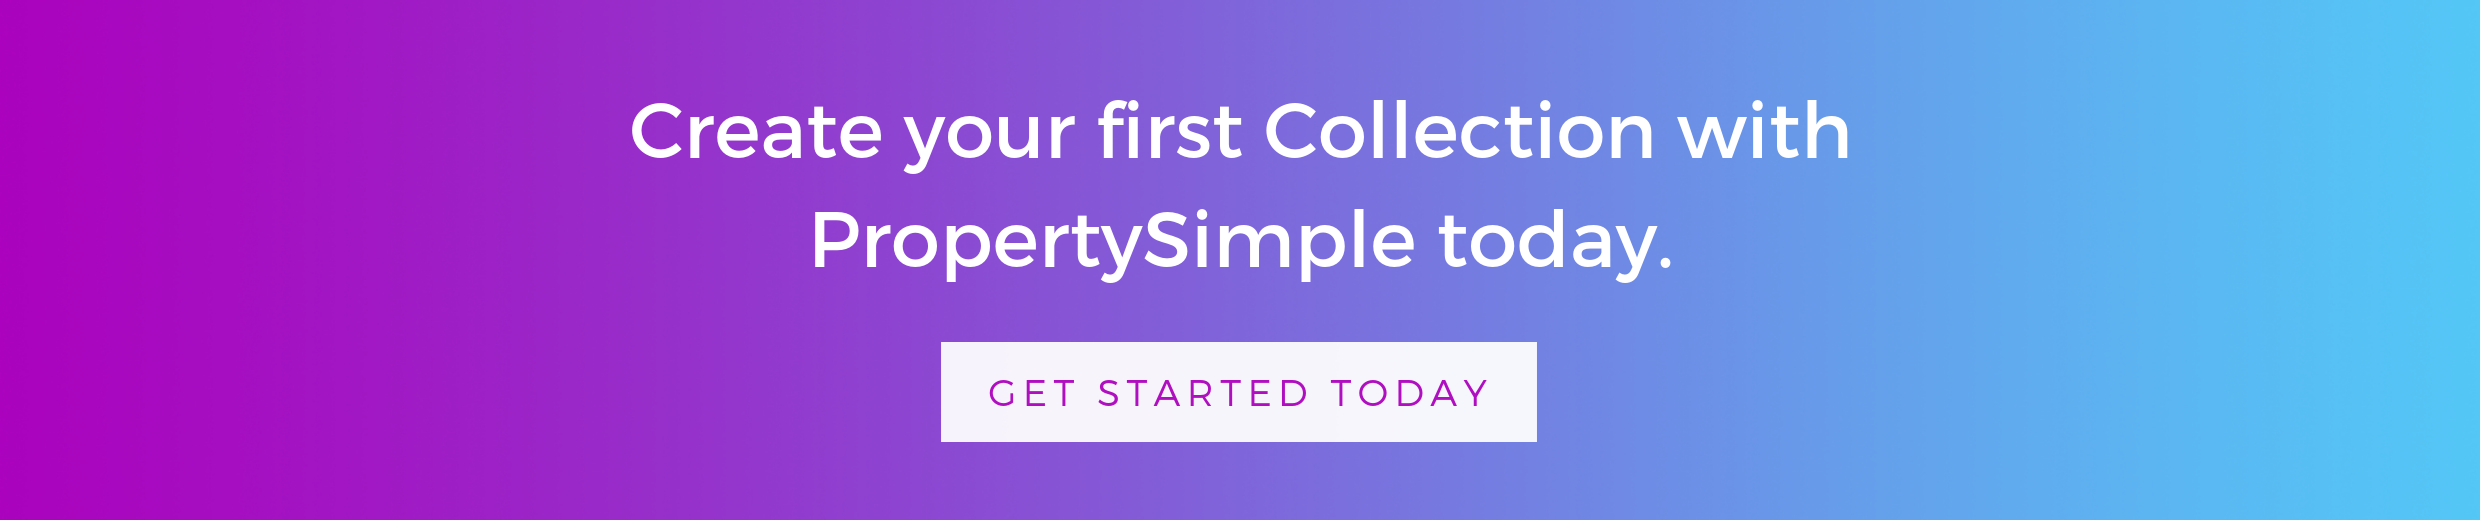 Create your first Collection with PropertySimple today